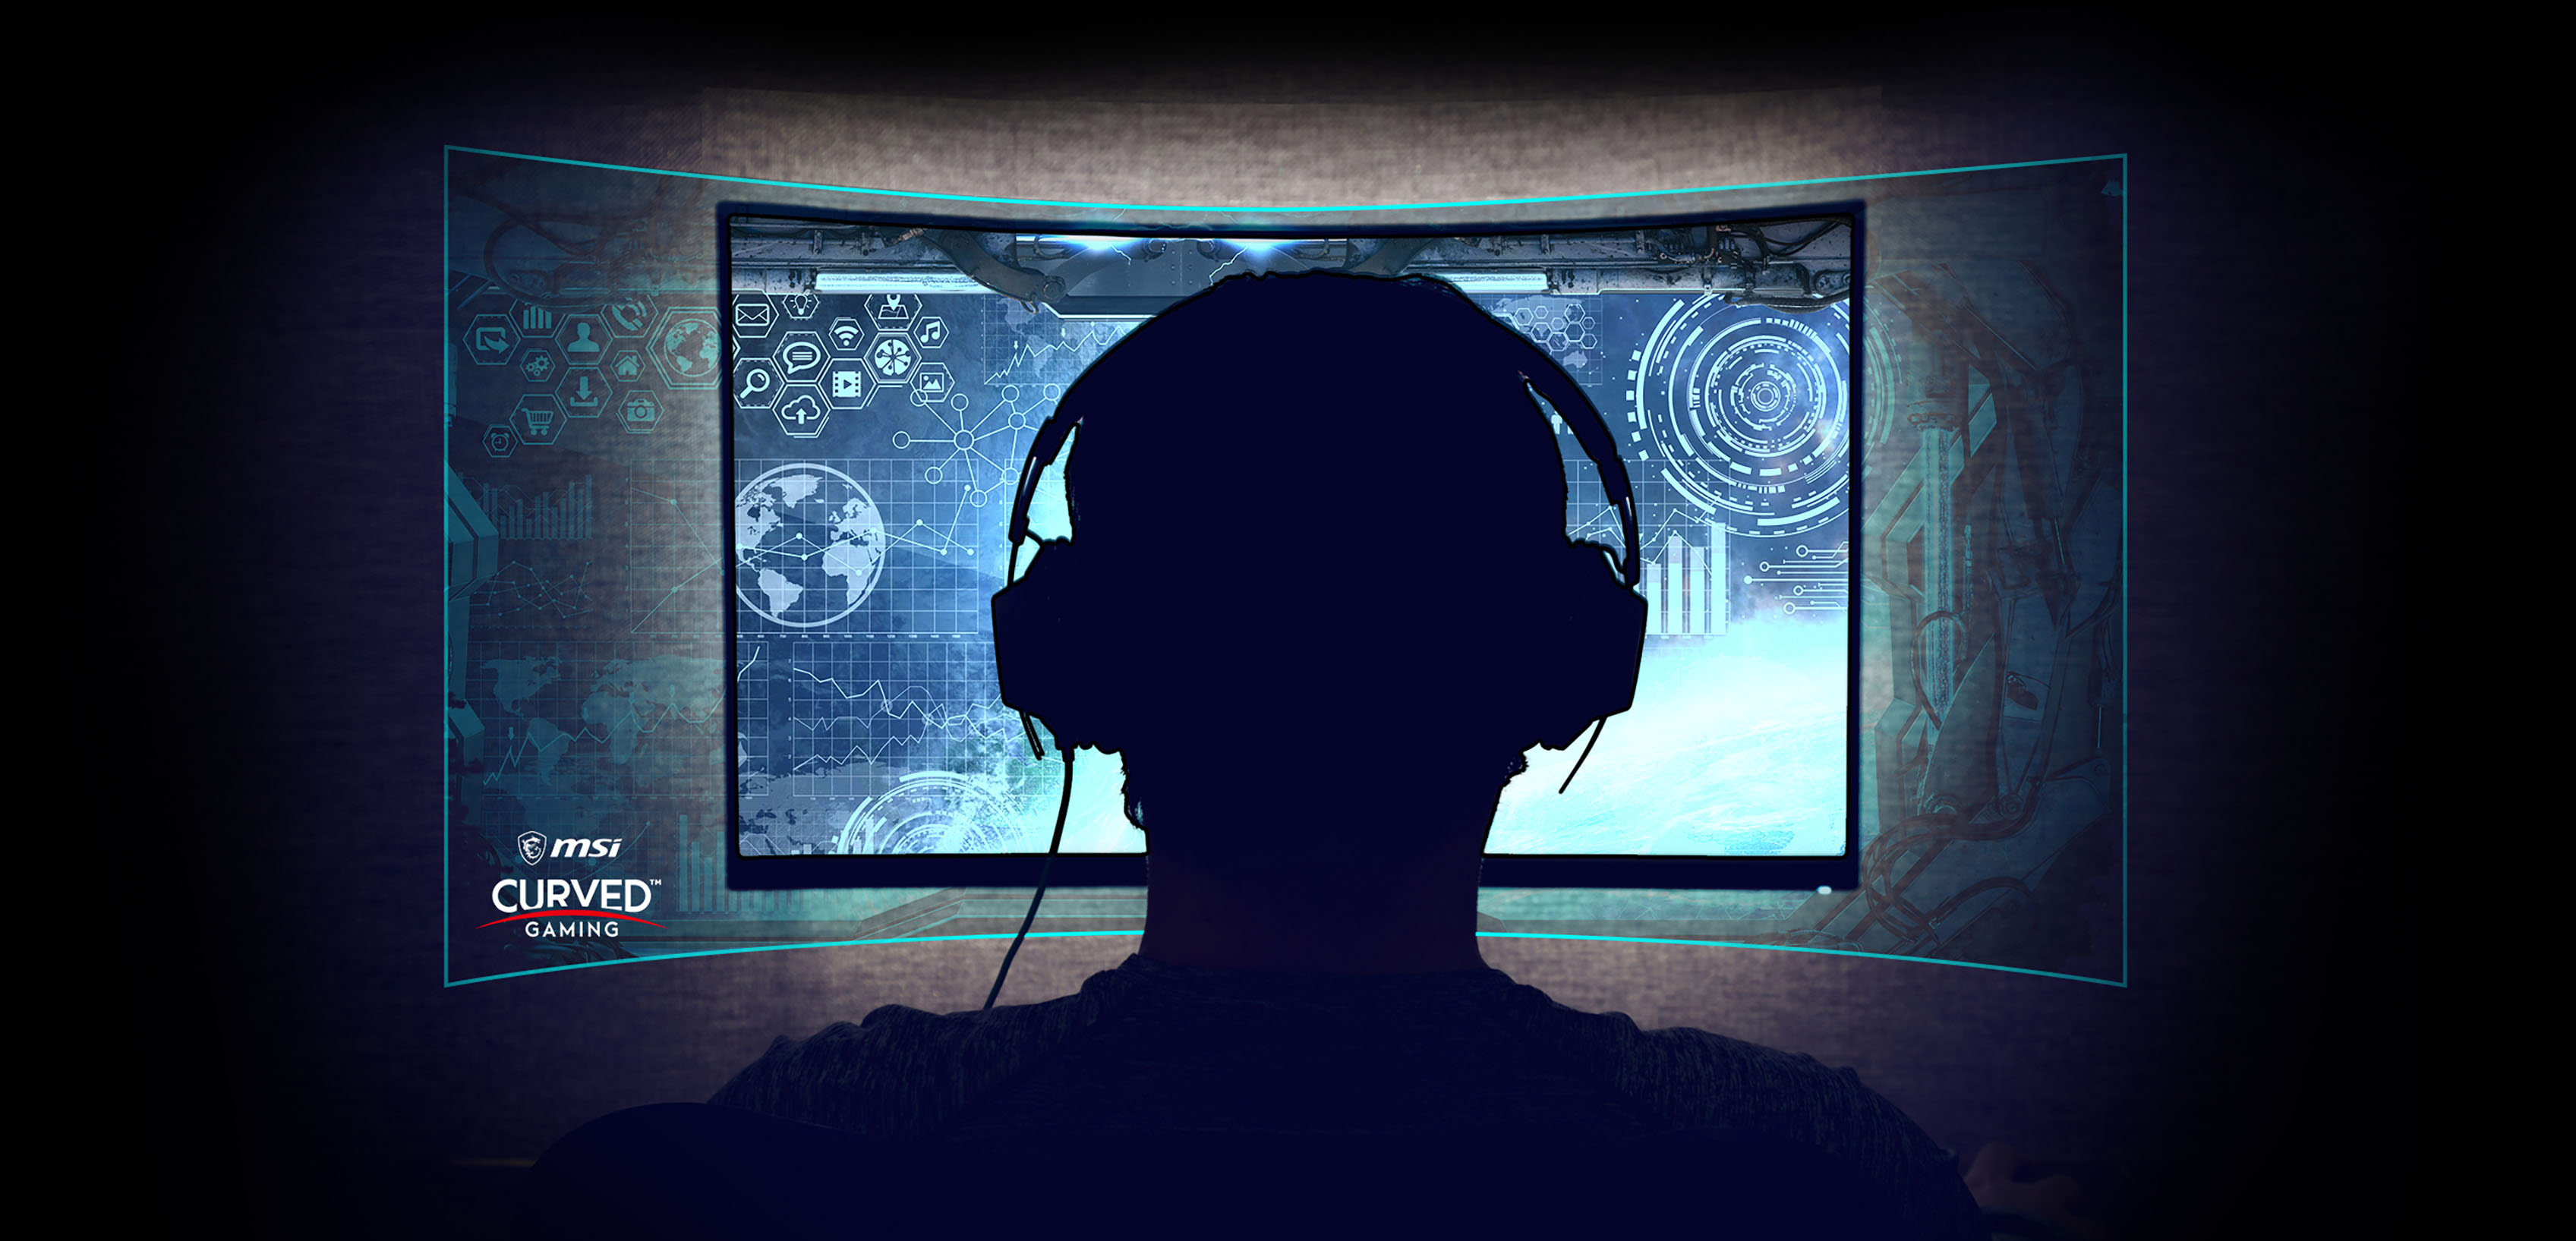 a man is in front of the monitor, showing the effect of curved